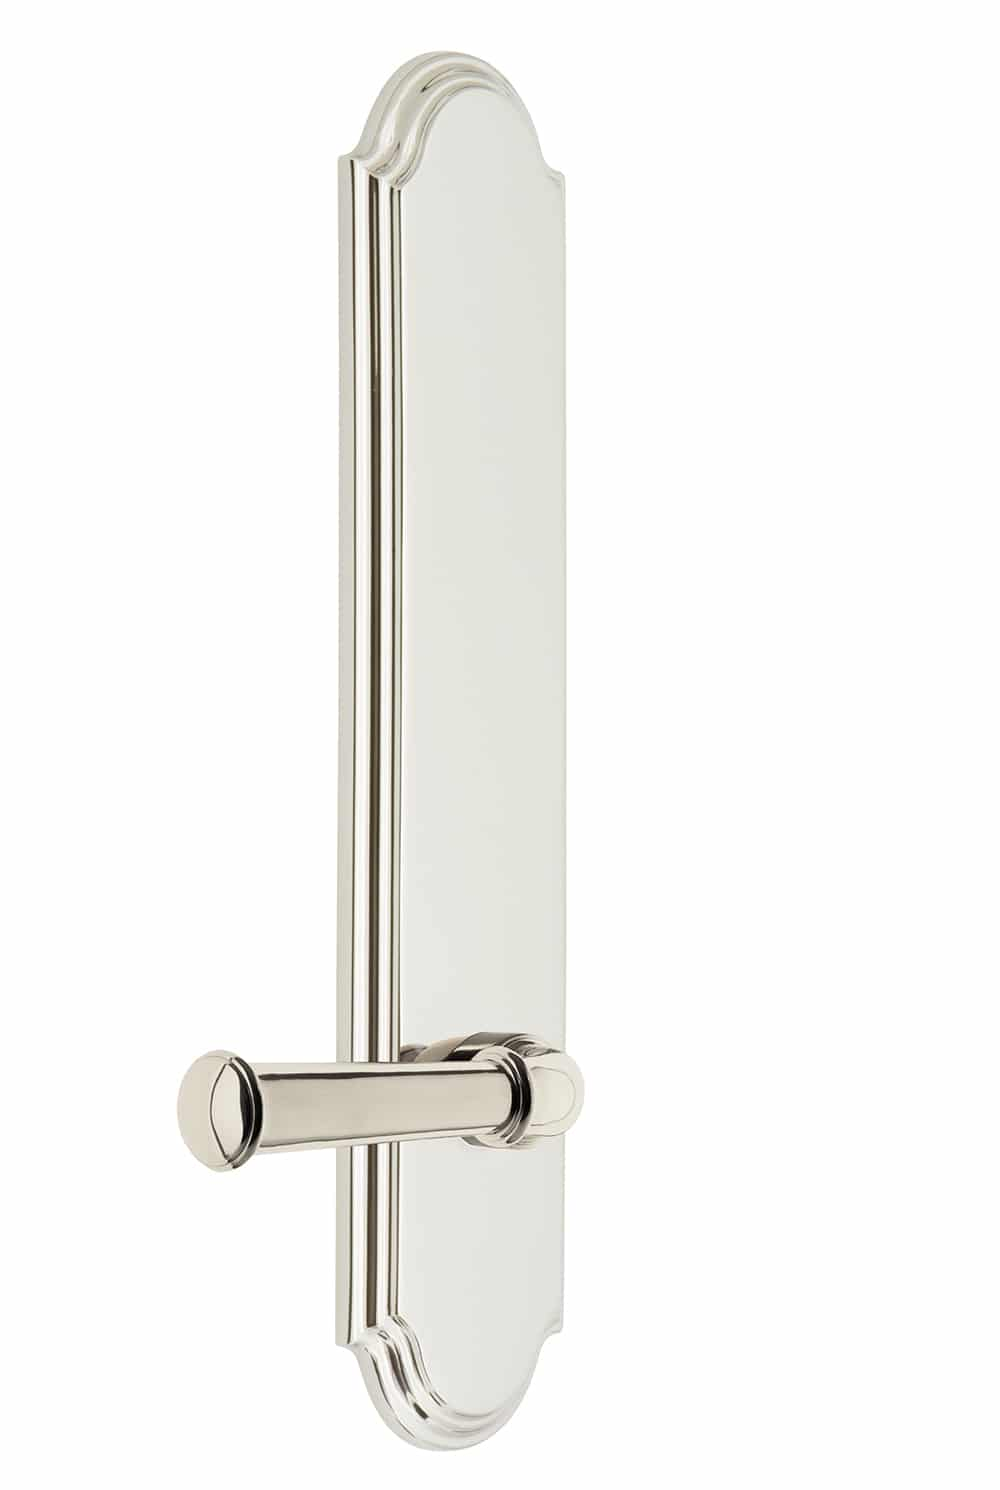 Grandeur Arc Tall Plate with Georgetown Lever